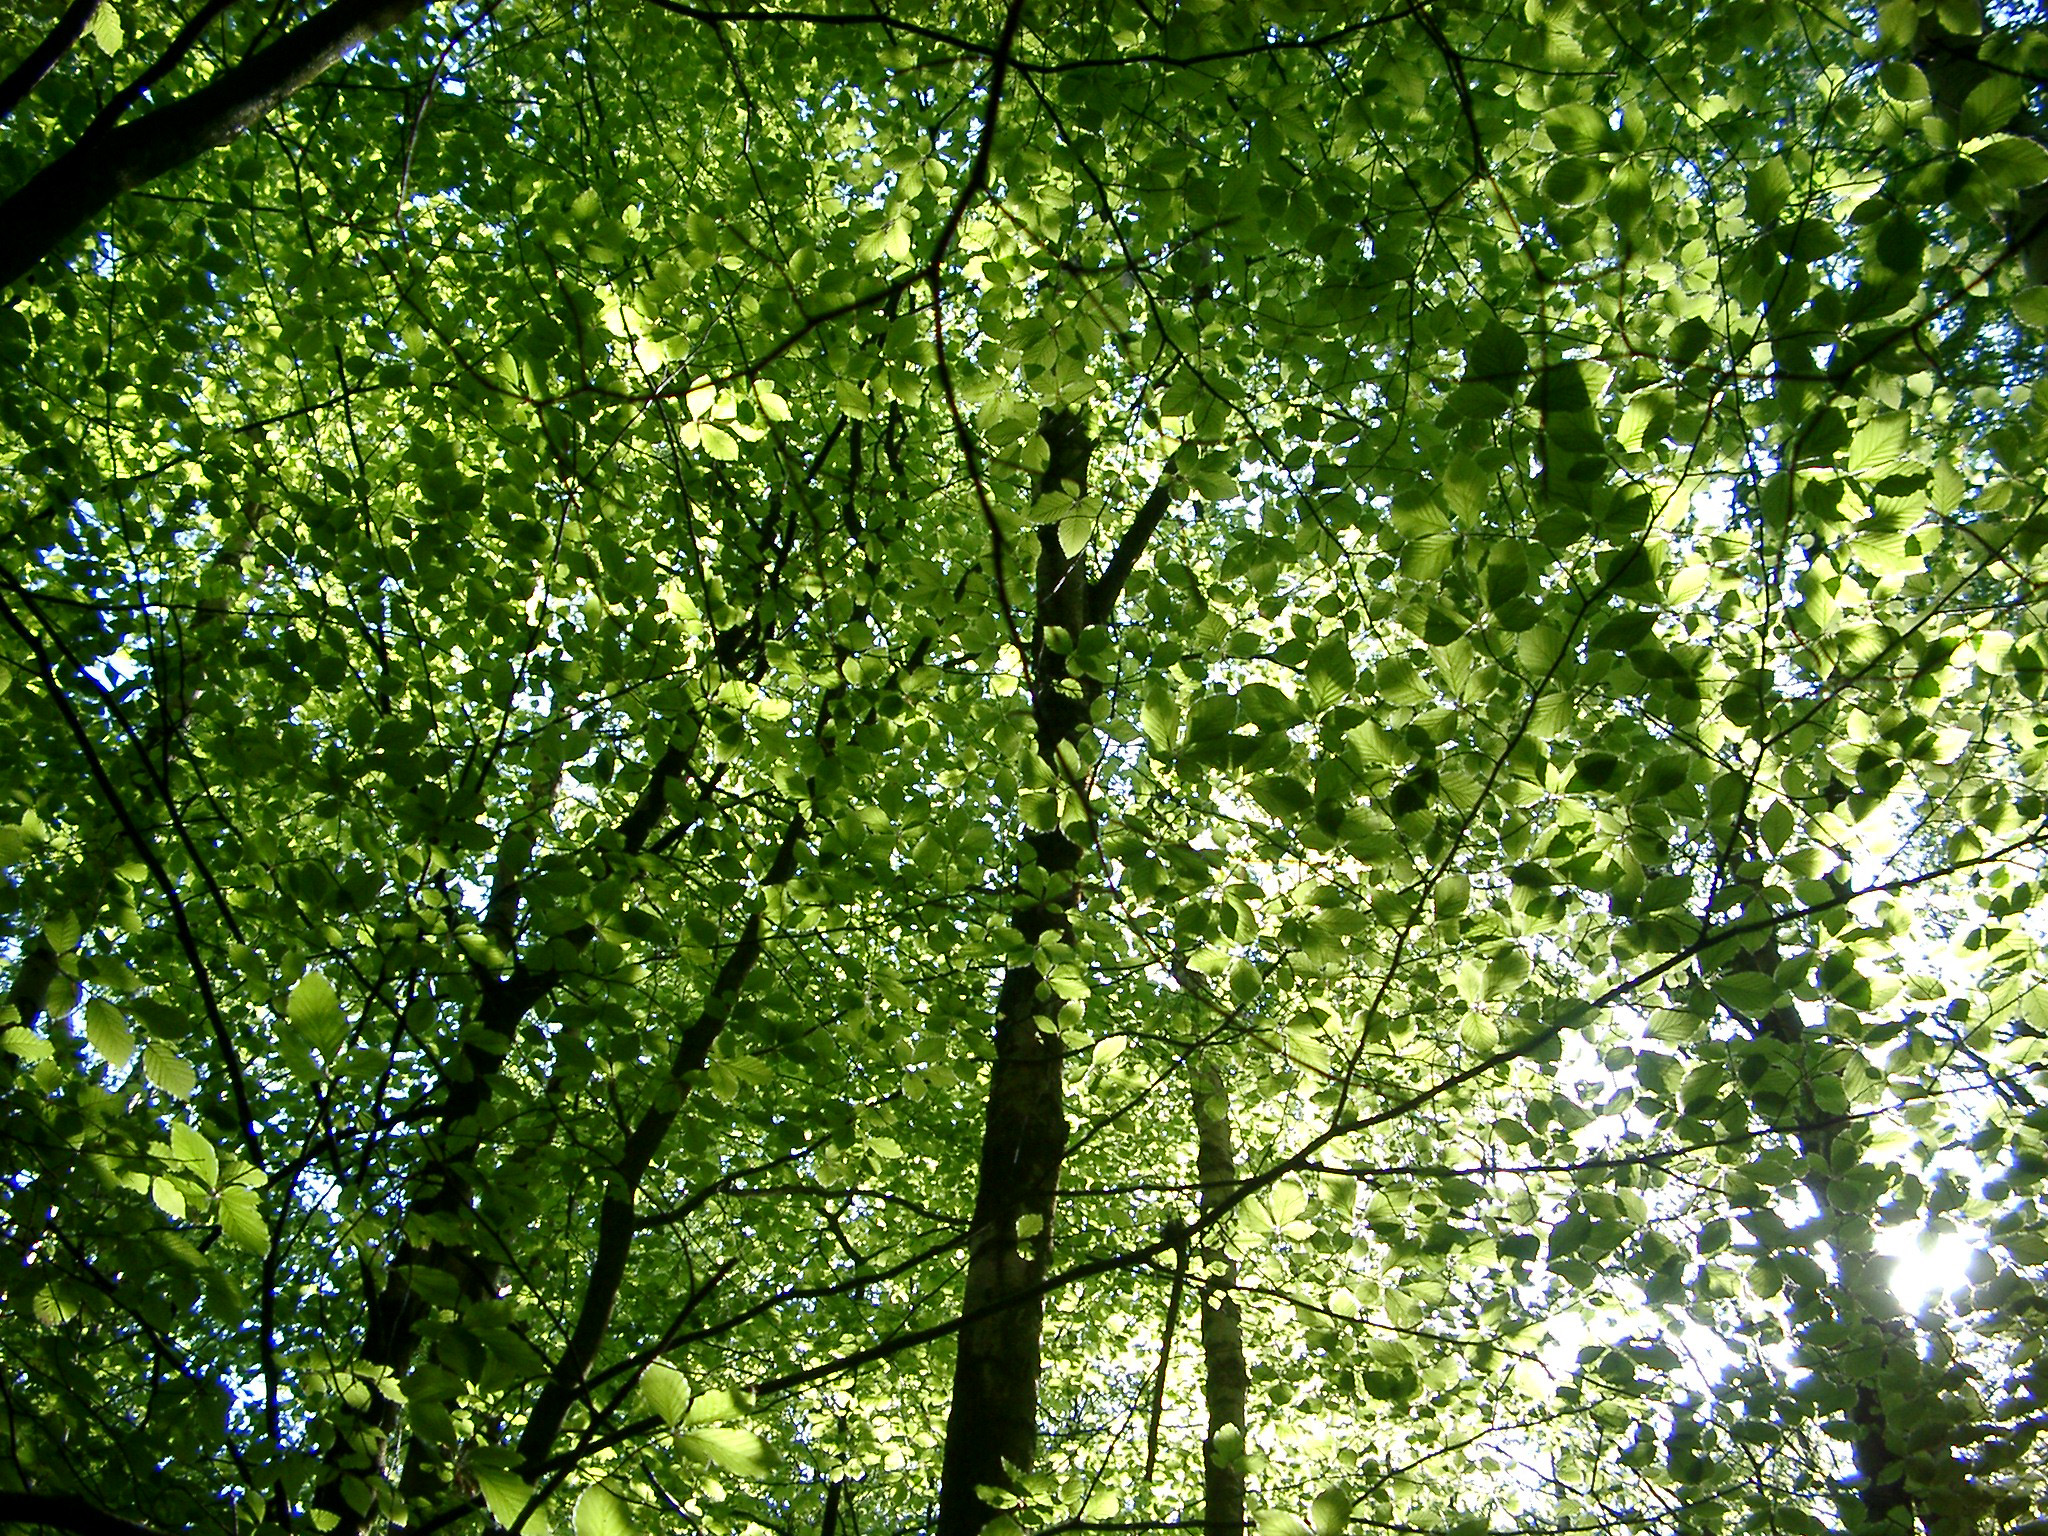 Fresh Tall Green Trees in the Forest on a Sunny Day. Captured from Low Level Angle Point.